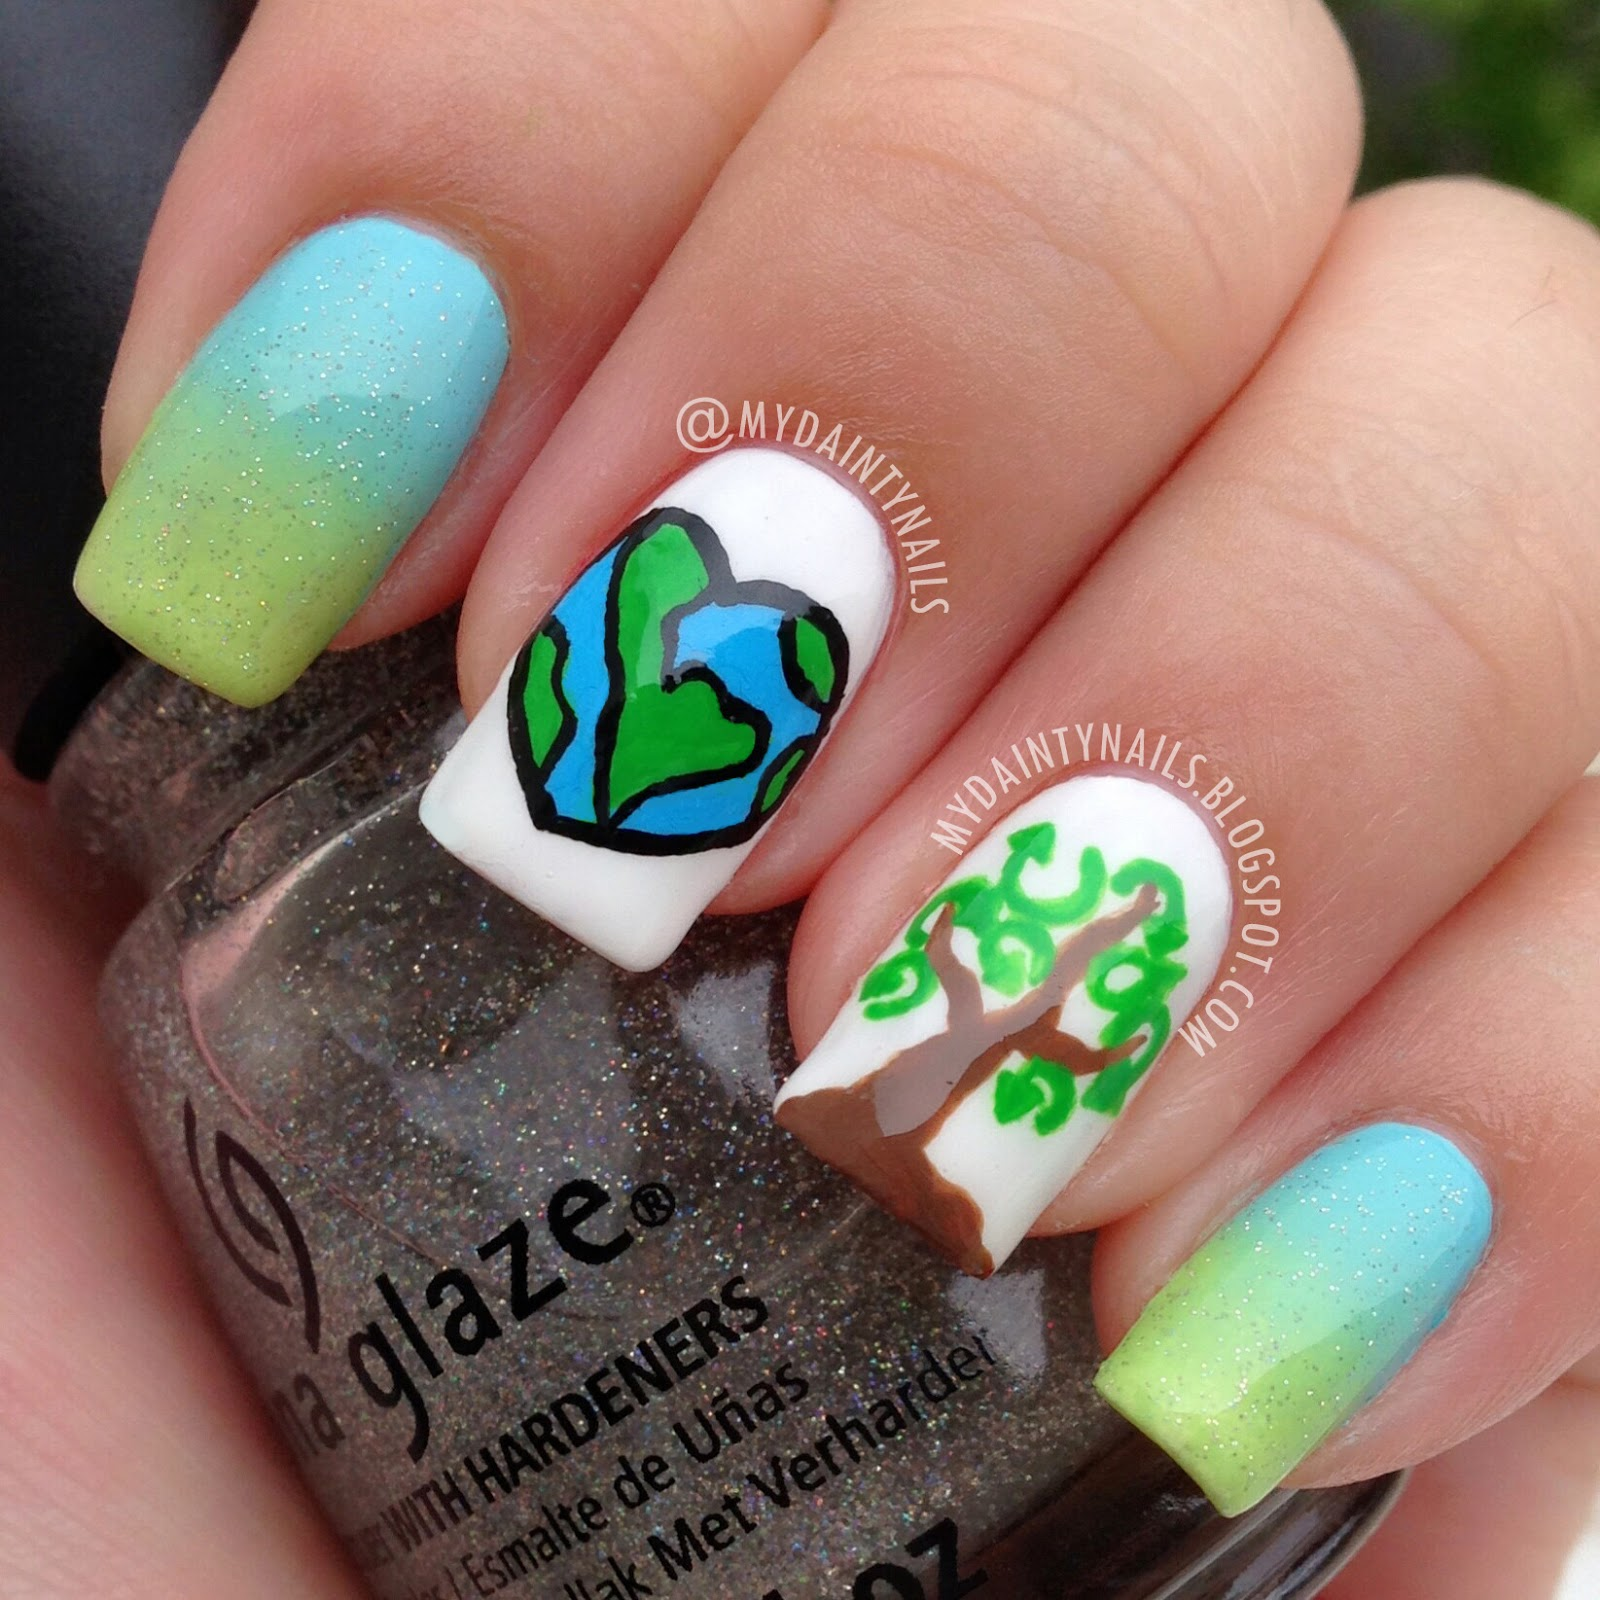 My Dainty Nails: Earth Day Nails